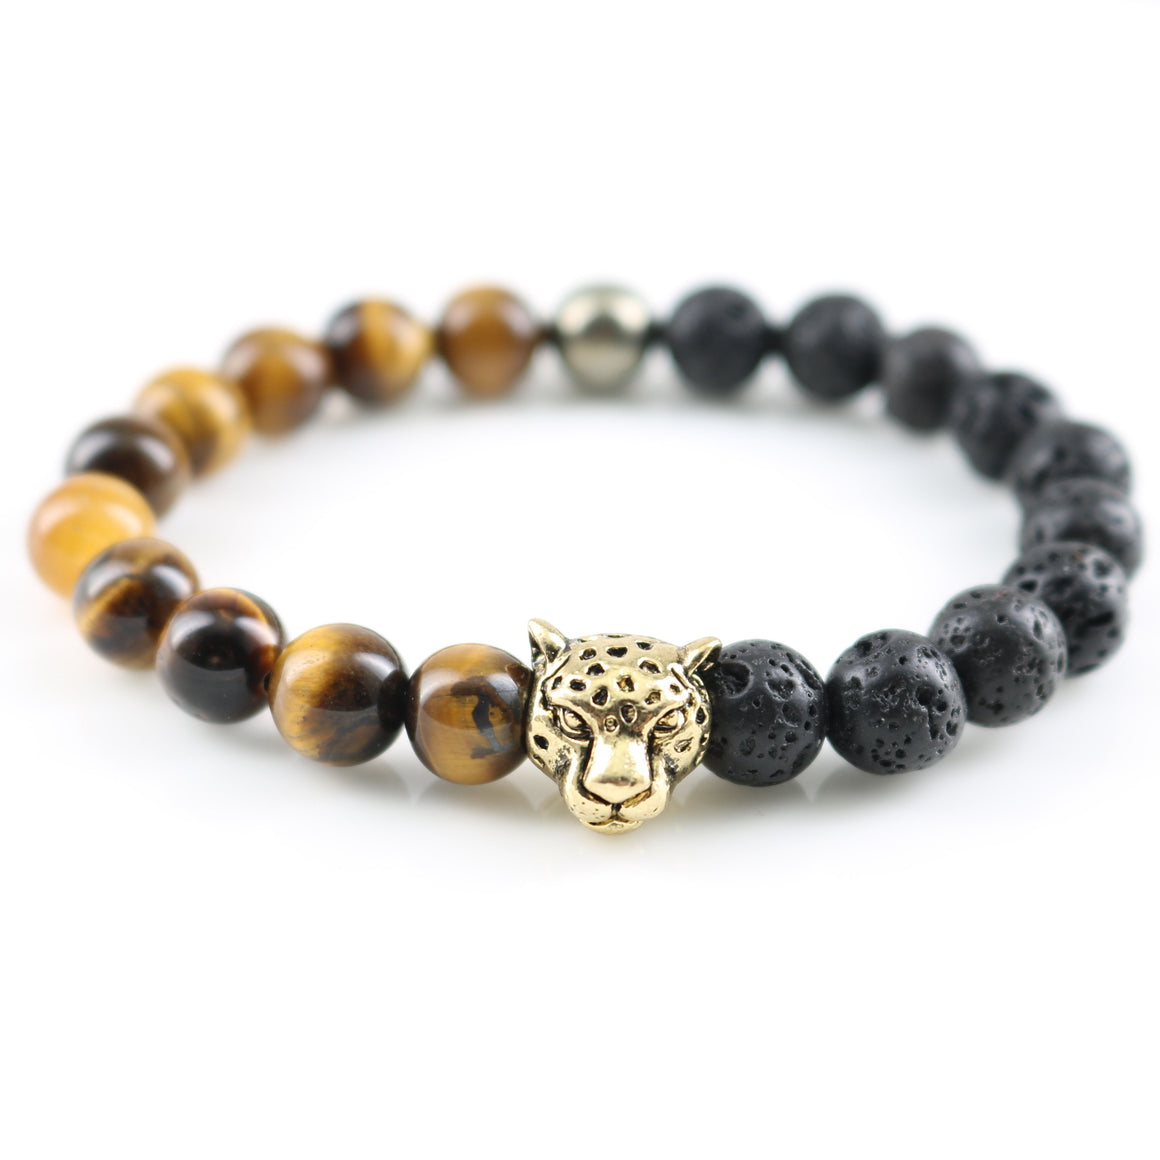 Volcanic Lava with Tiger Eye Stone Vintage Gold Leopard Head Bracelets in Velvet Pouch